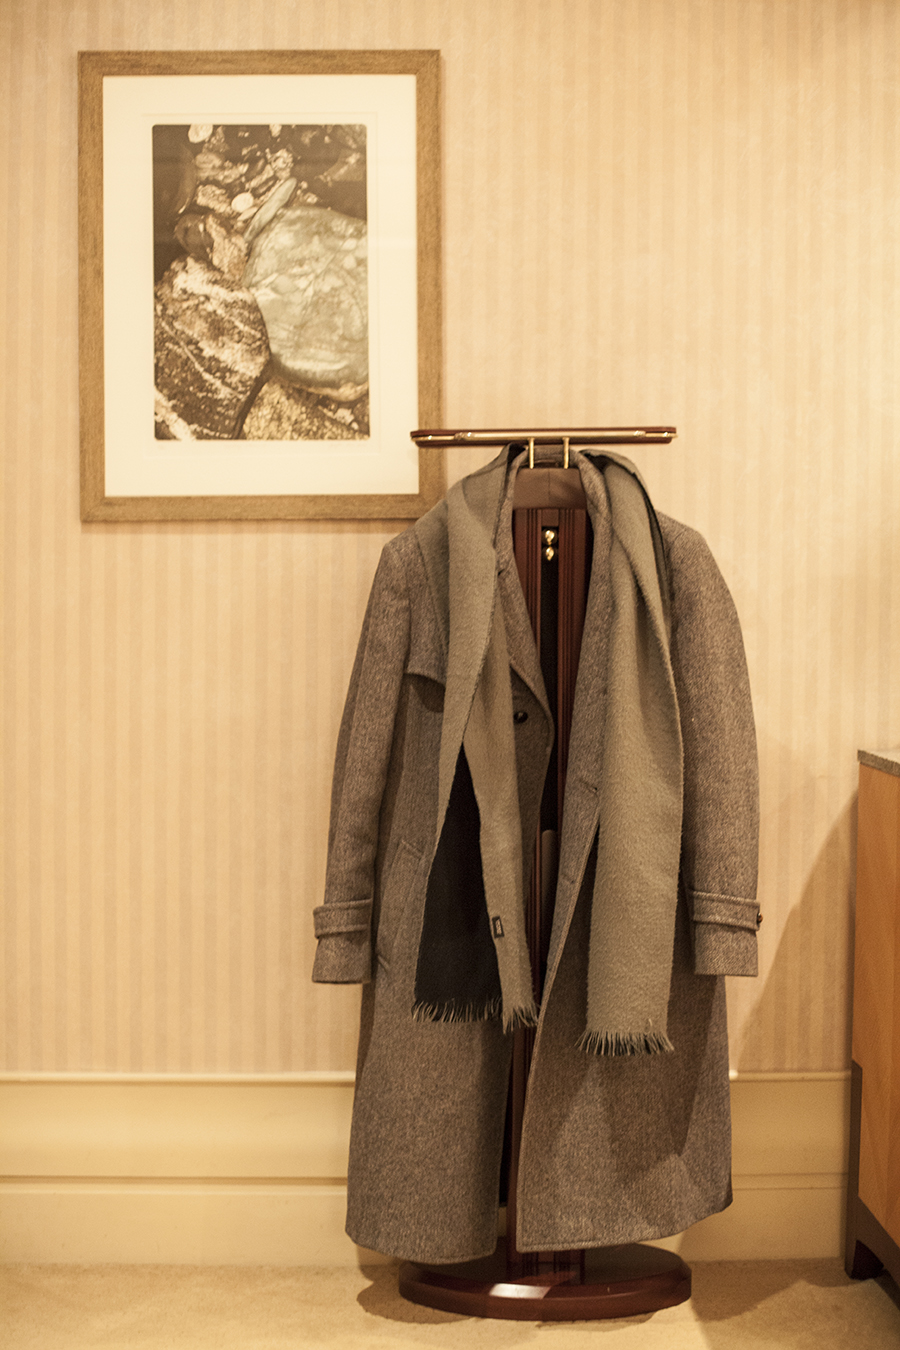 Coat hanging on a coat stand at the Lotte Hotel, Myeongdong, Korea